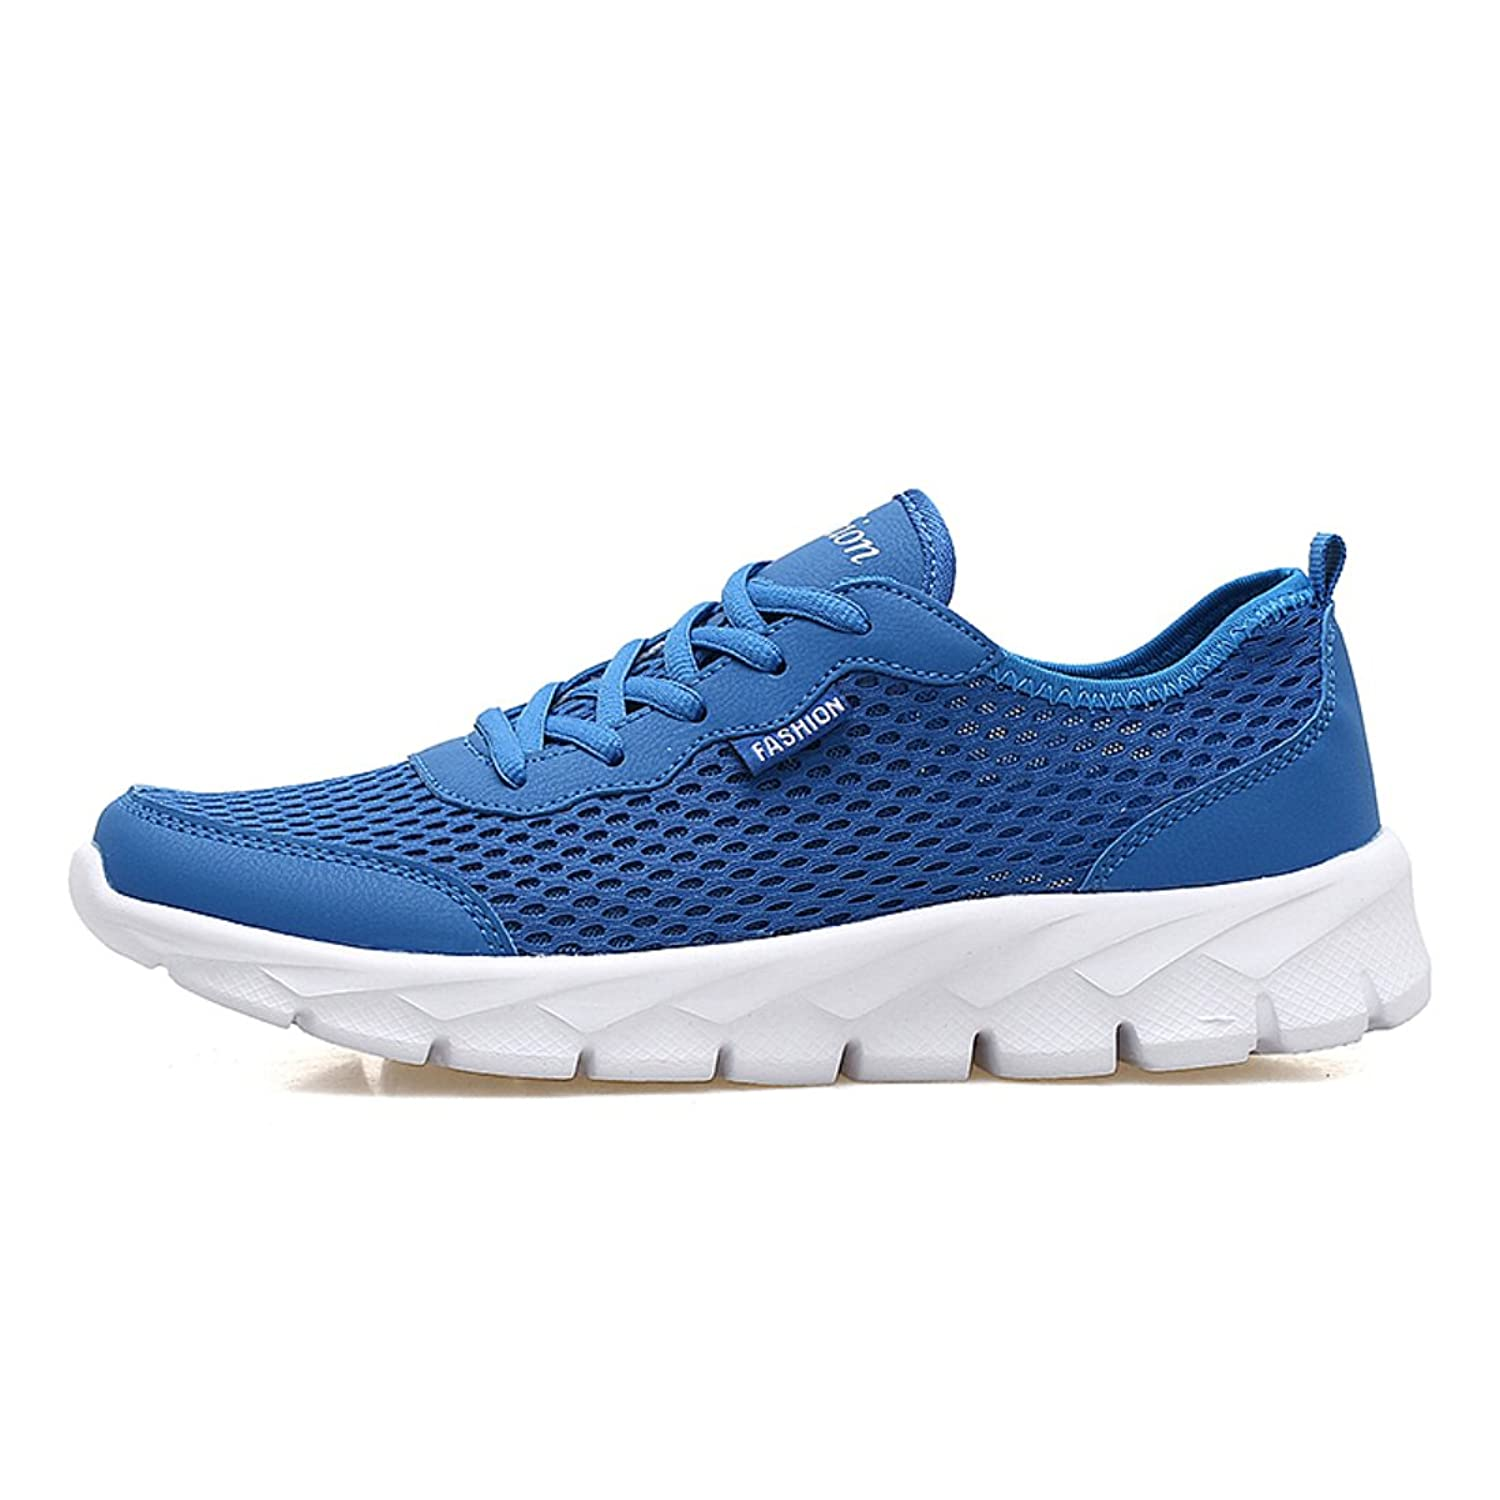 FOBEY Flat Mujer Hombre, Color Azul, Talla 35.5